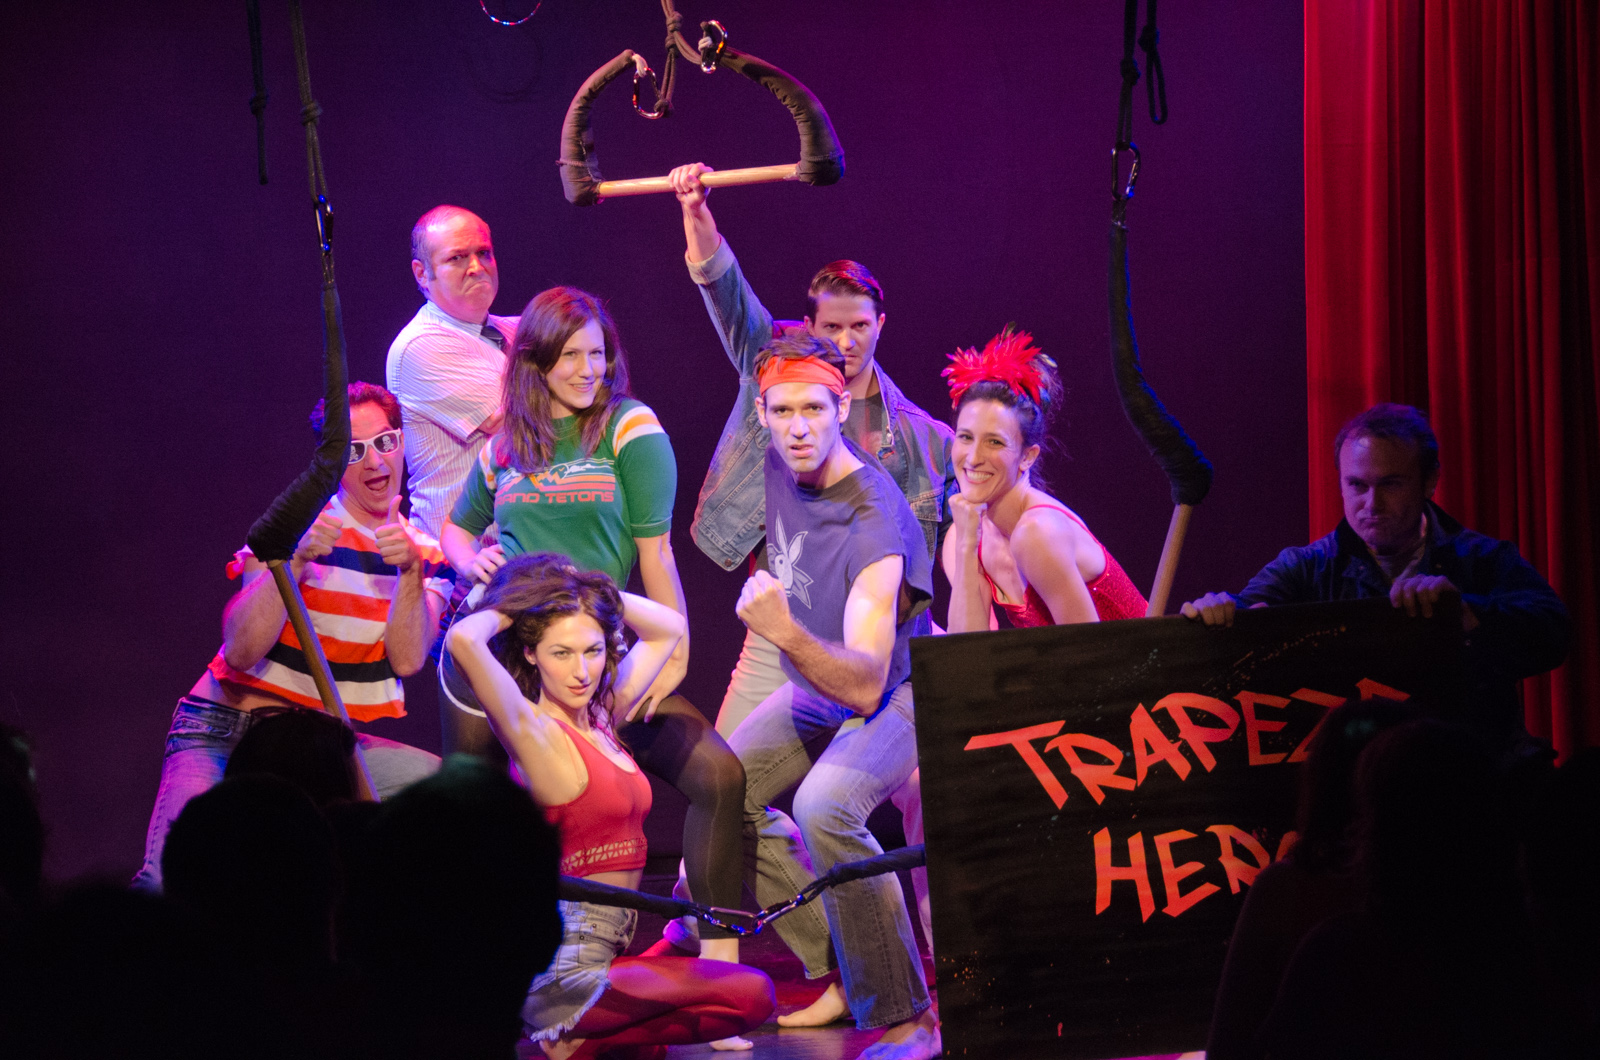 The cast of Trapeze Hero!   photo by Marielle Solan